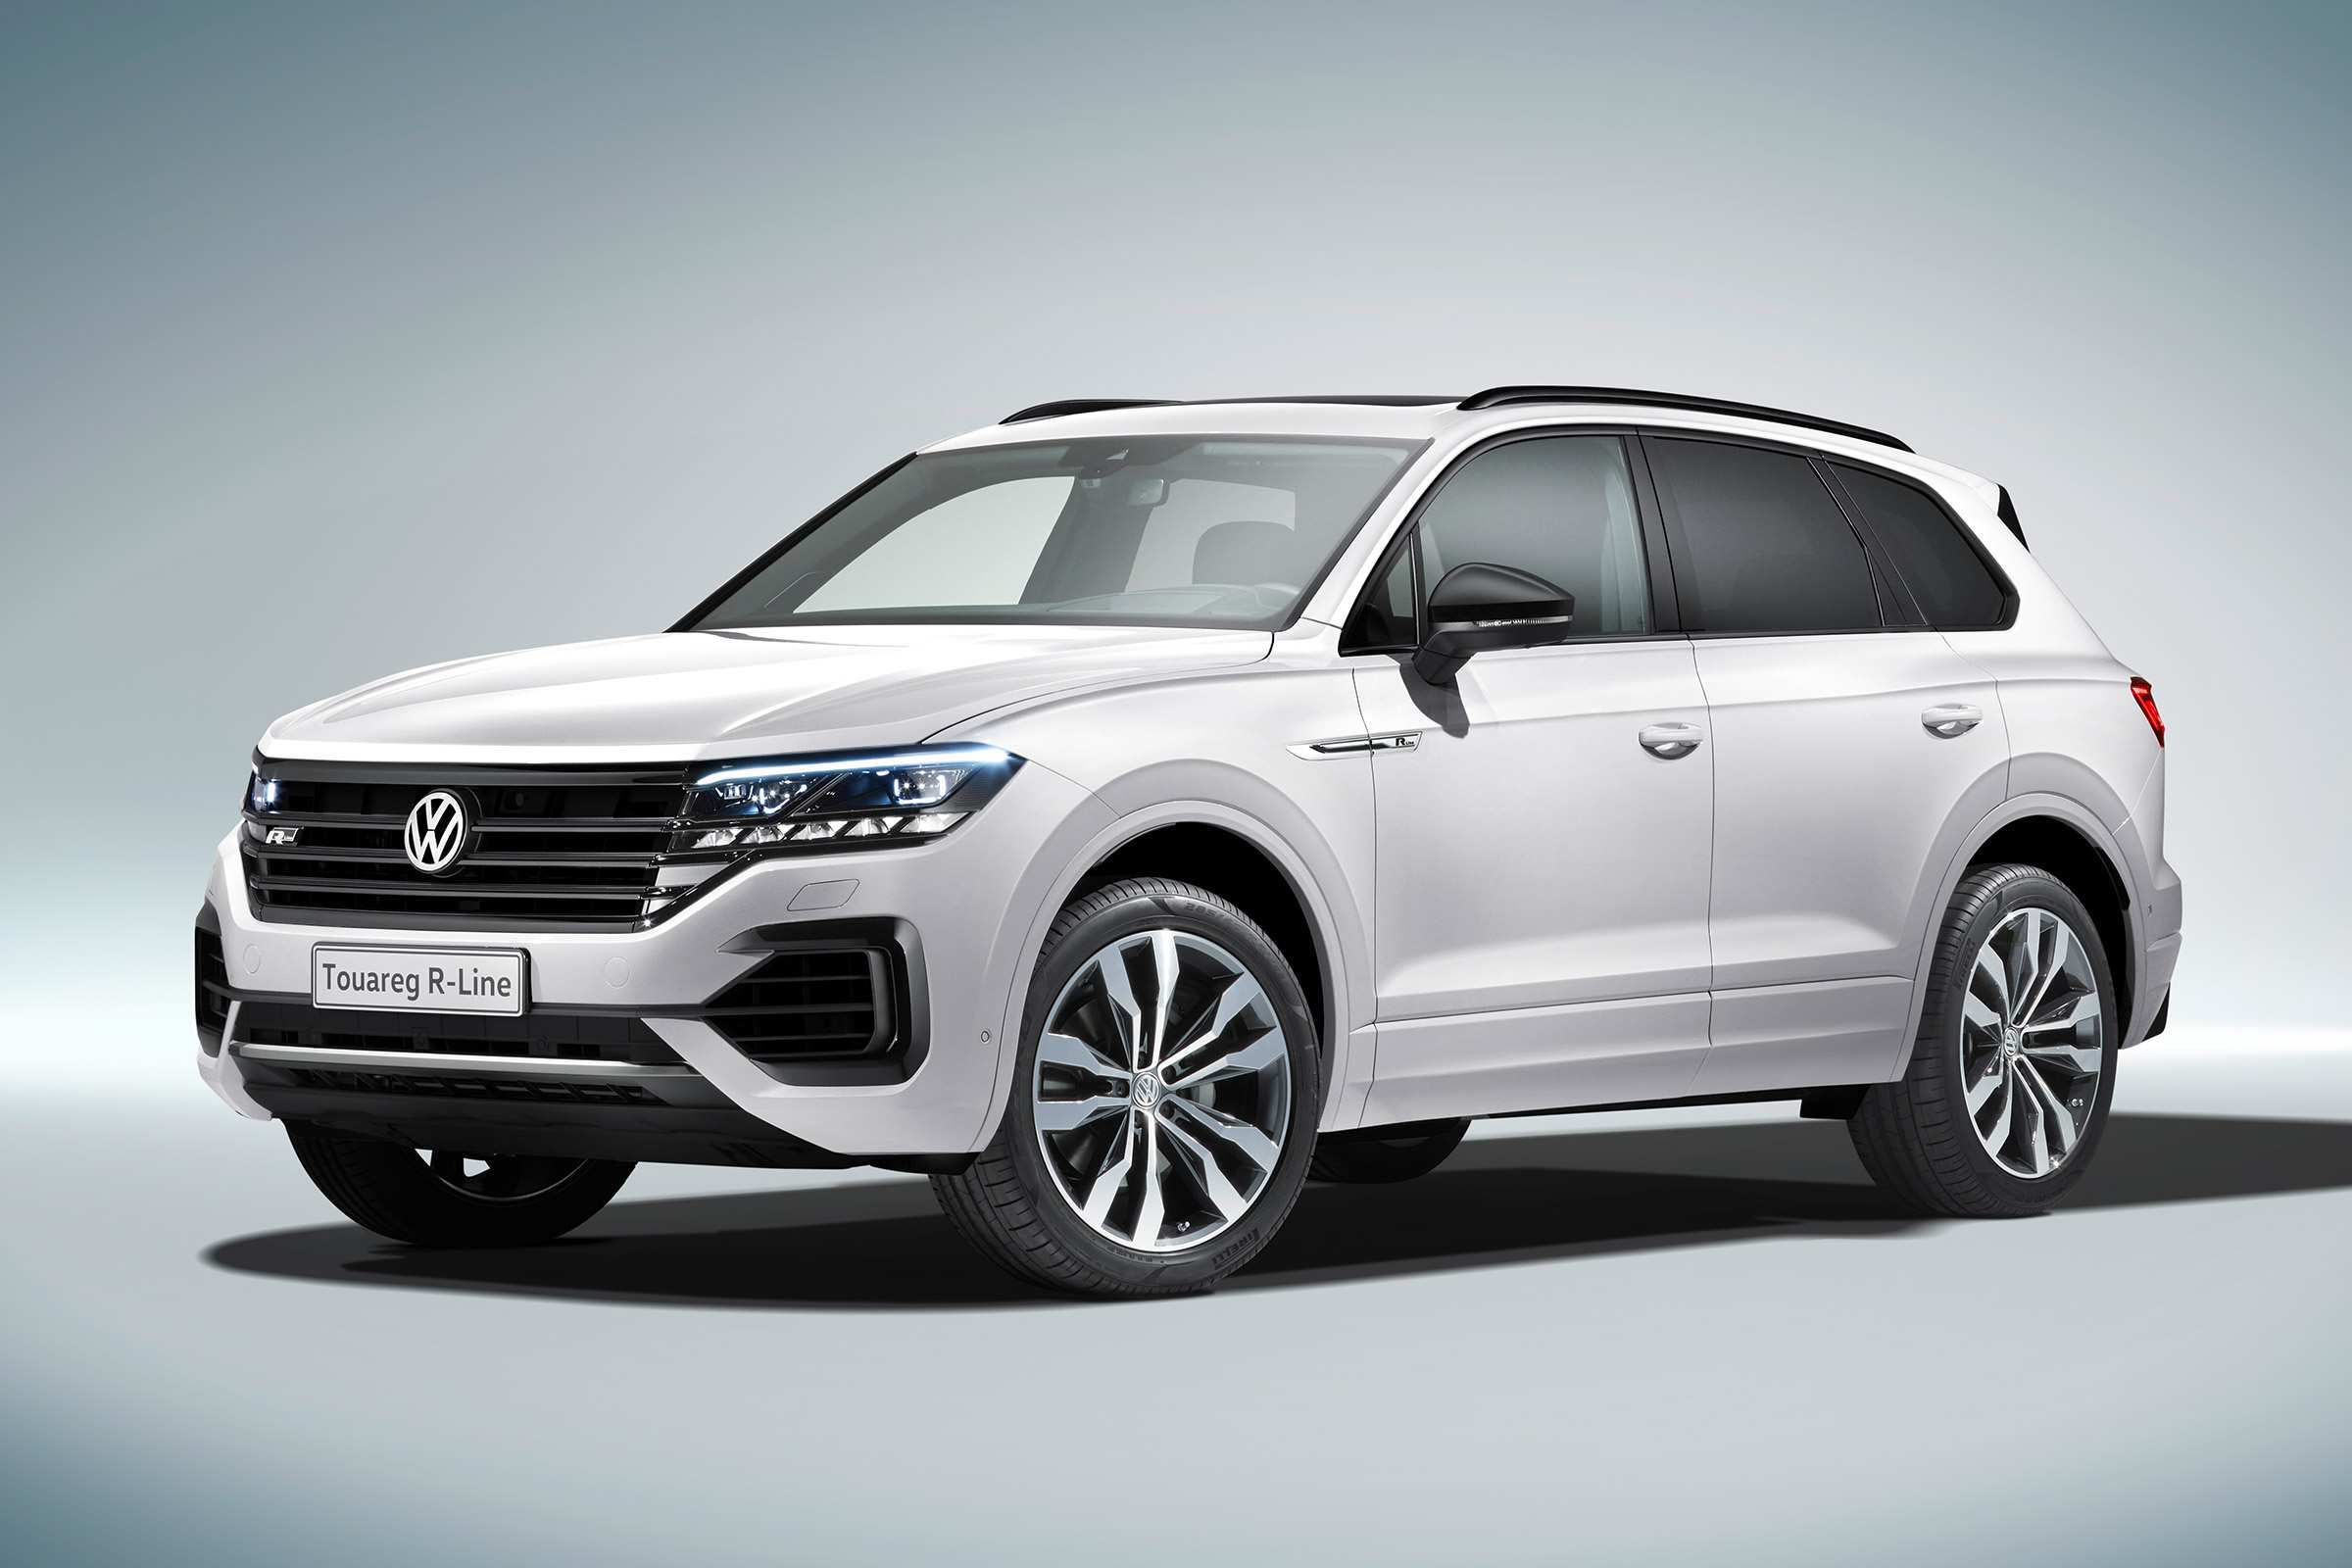 48 New Xe Volkswagen Tiguan 2020 Research New for Xe Volkswagen Tiguan 2020